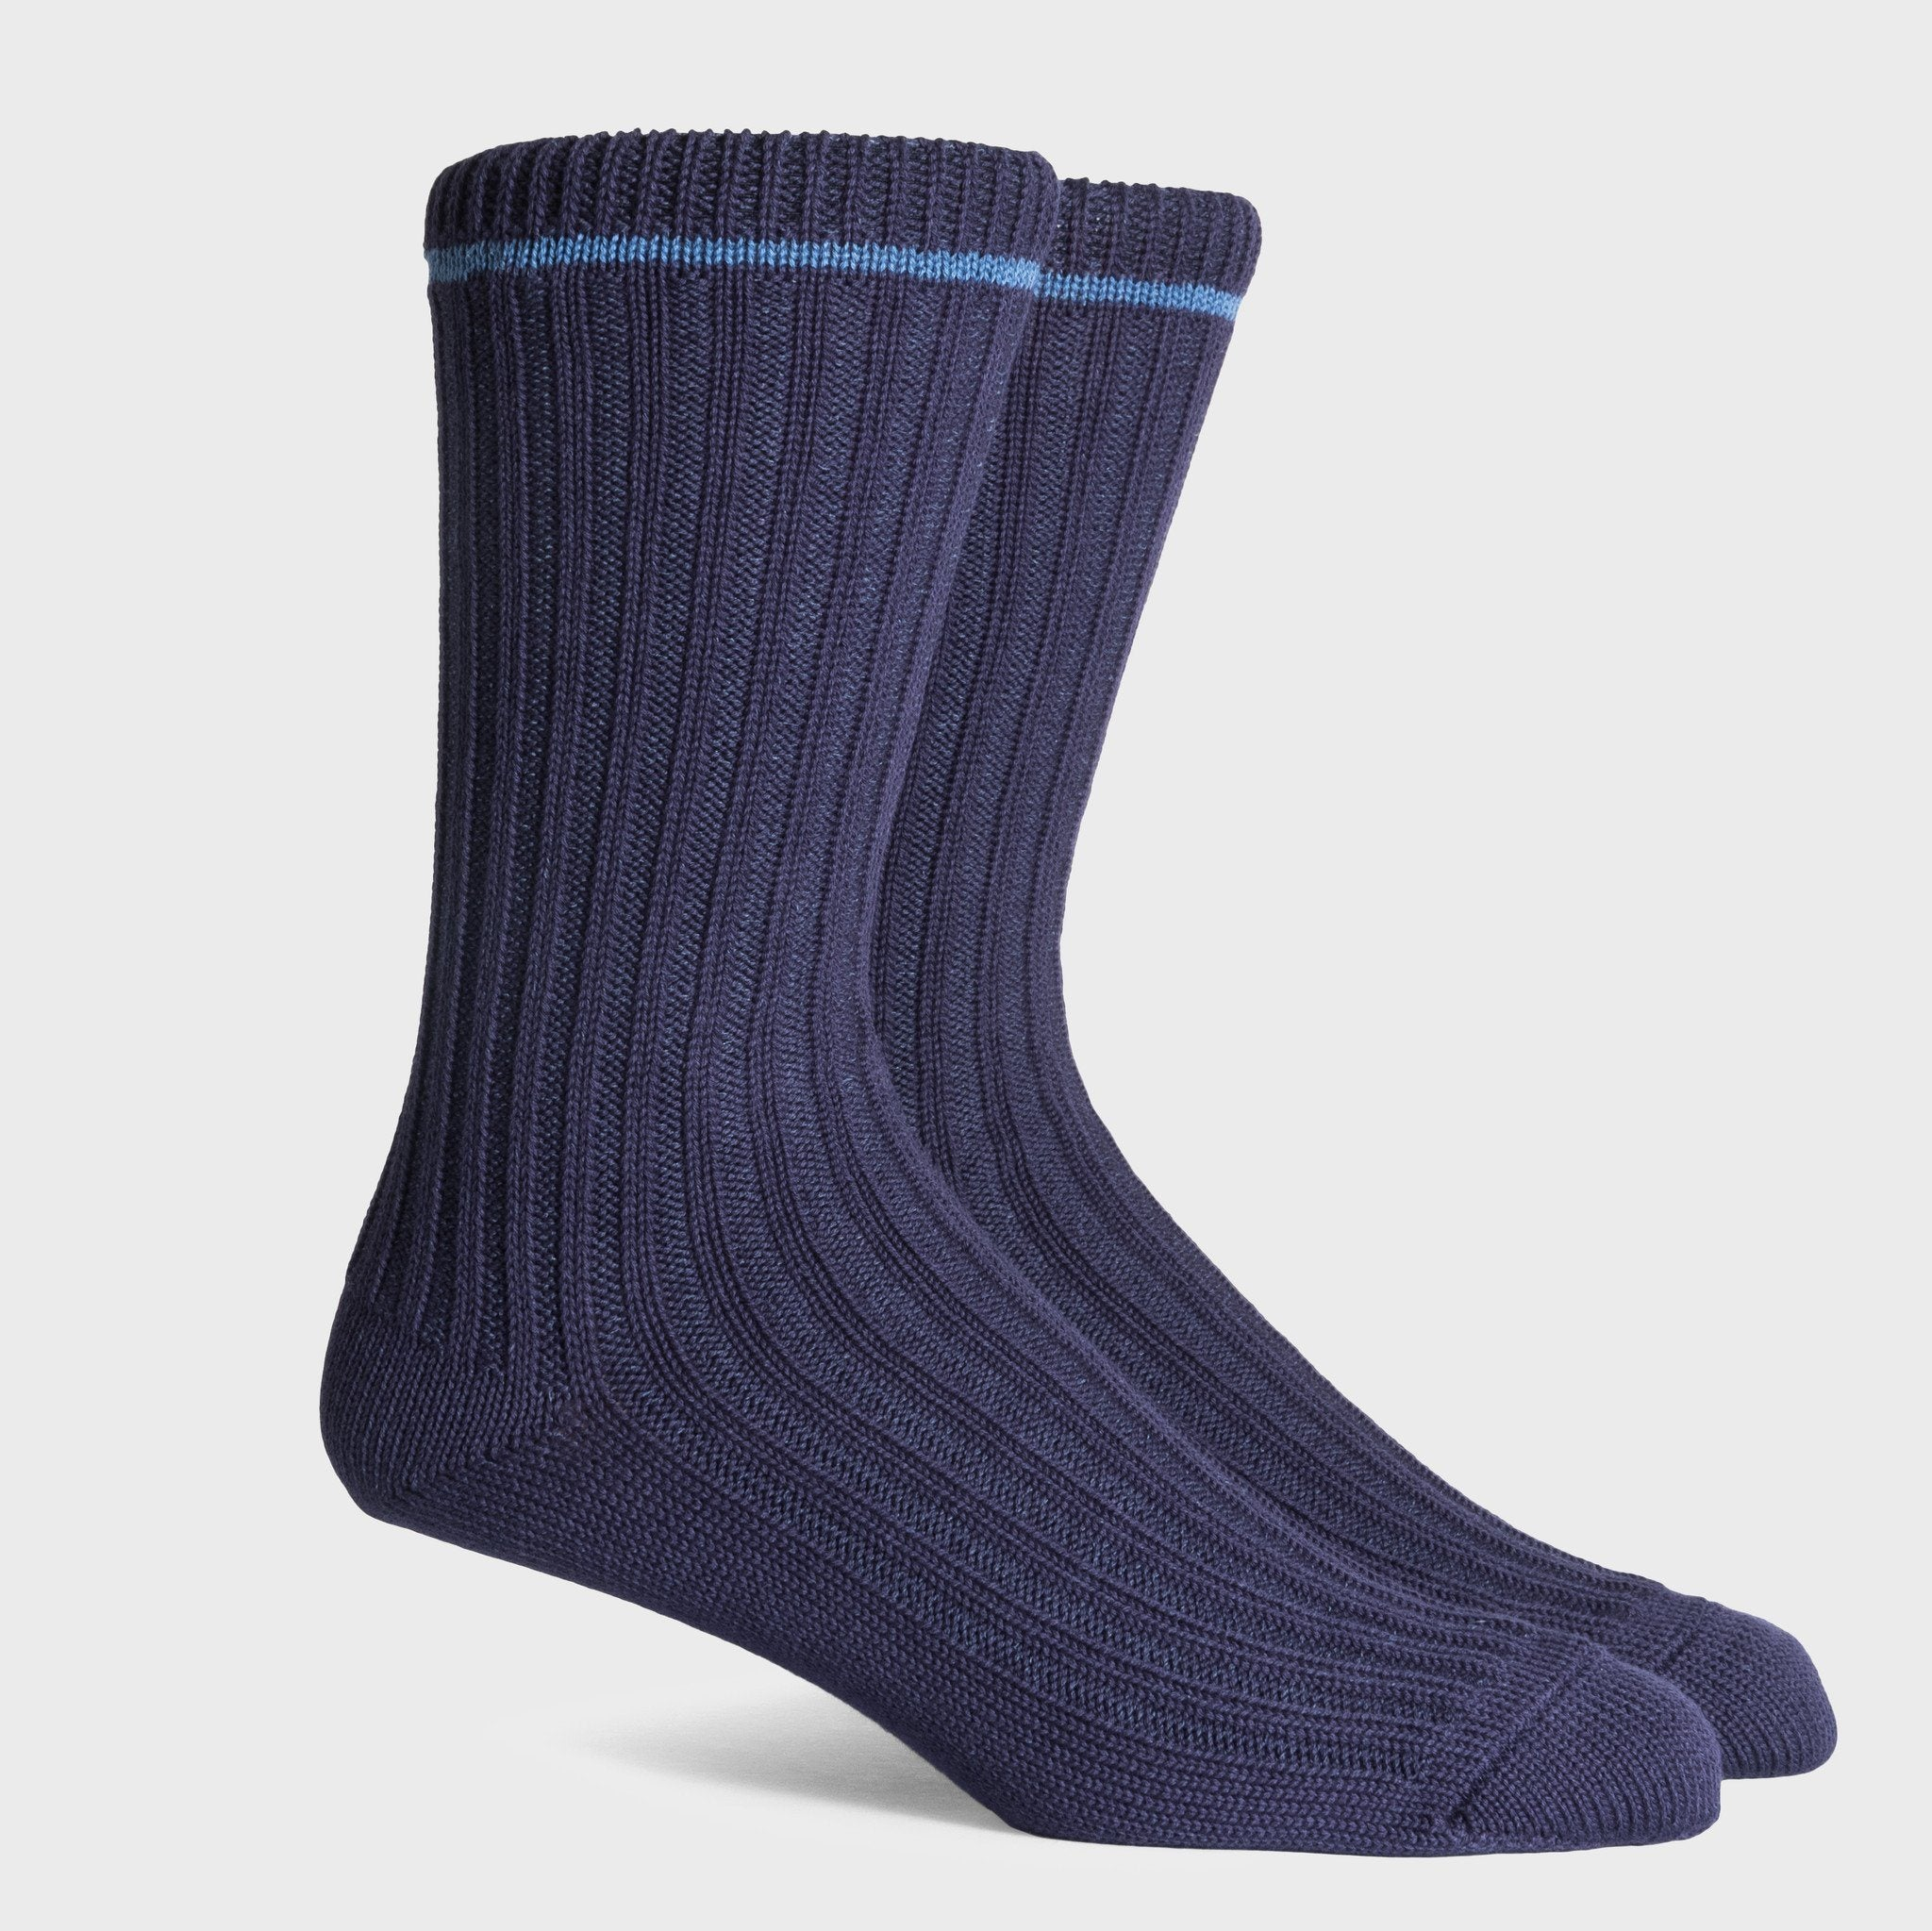 Richer Poorer Medina Socks Navy